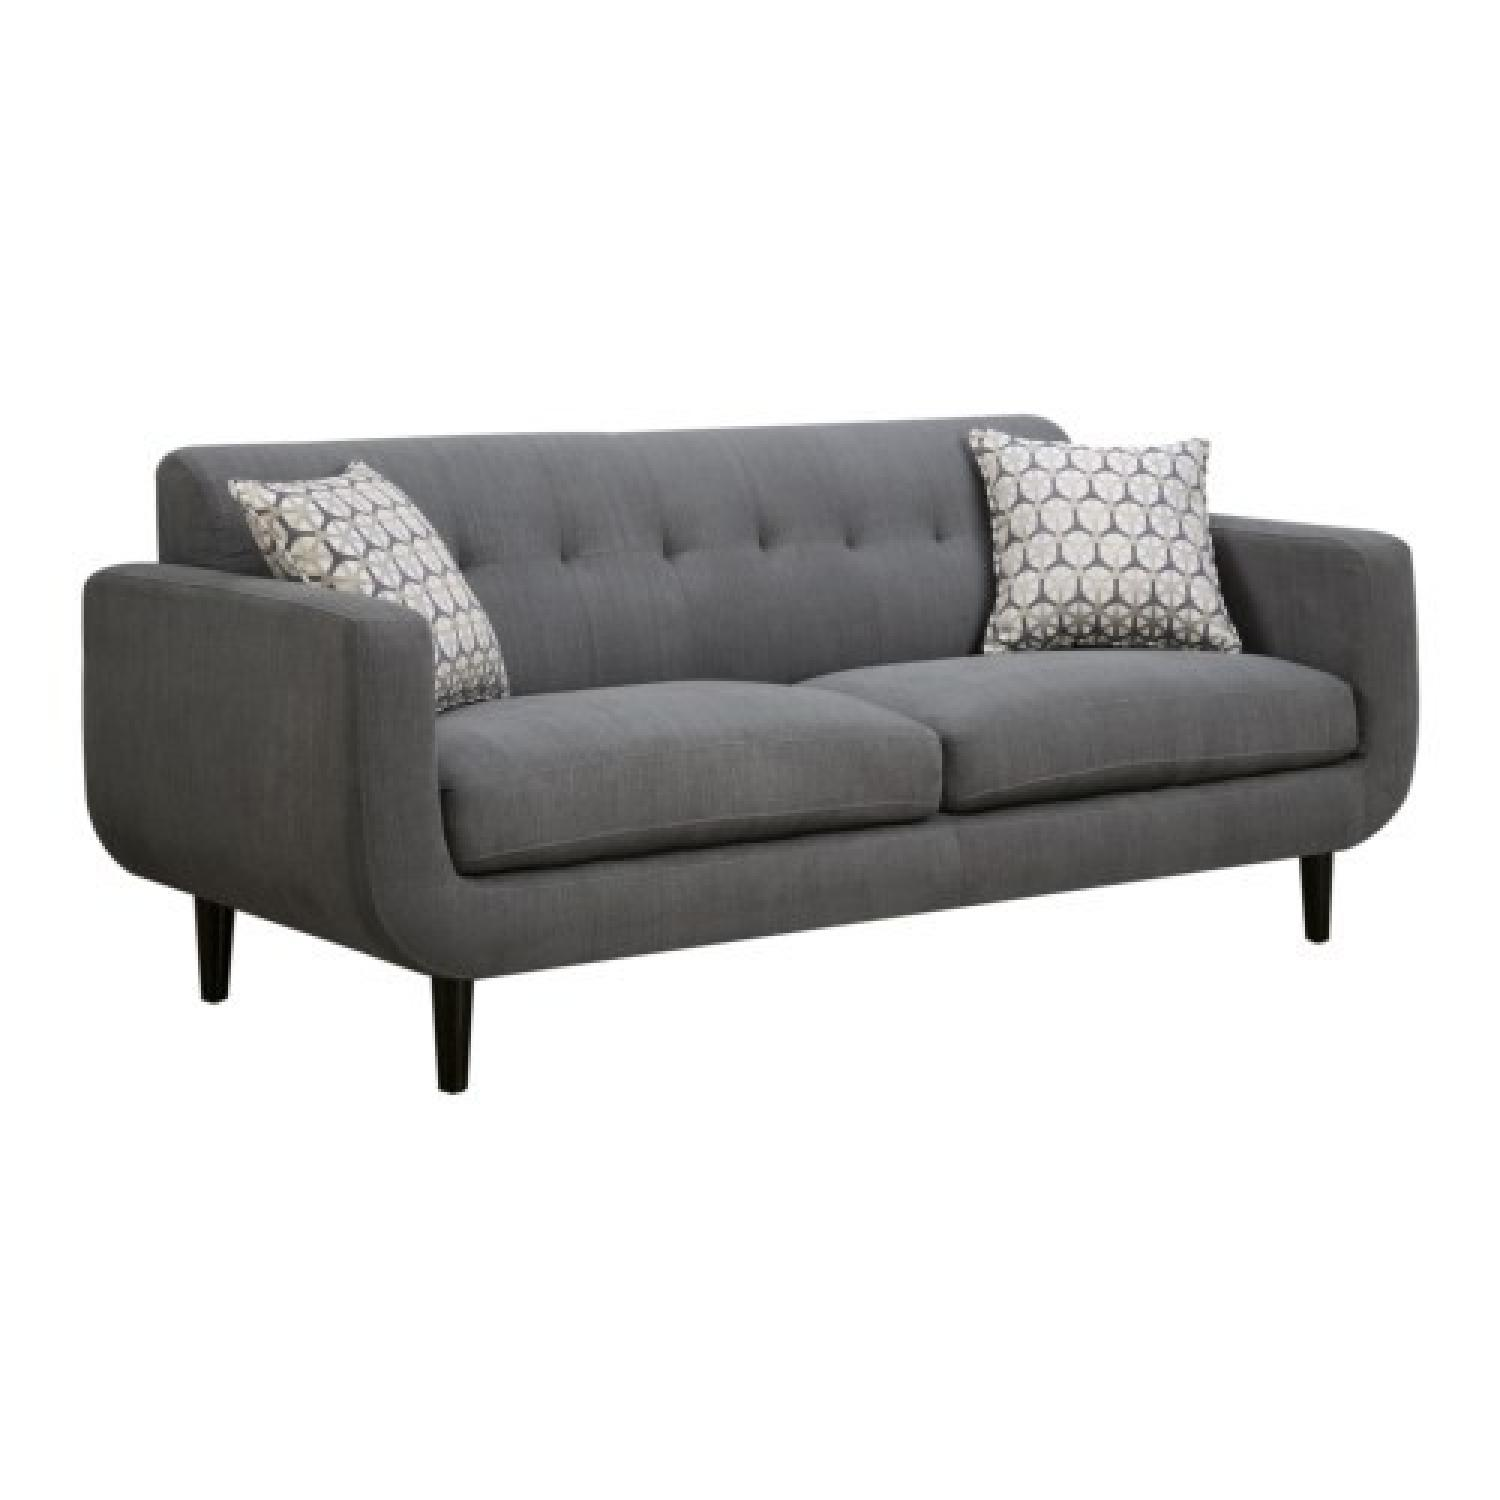 Grey 3 Seater Sofa w/ Cappuccino Leg